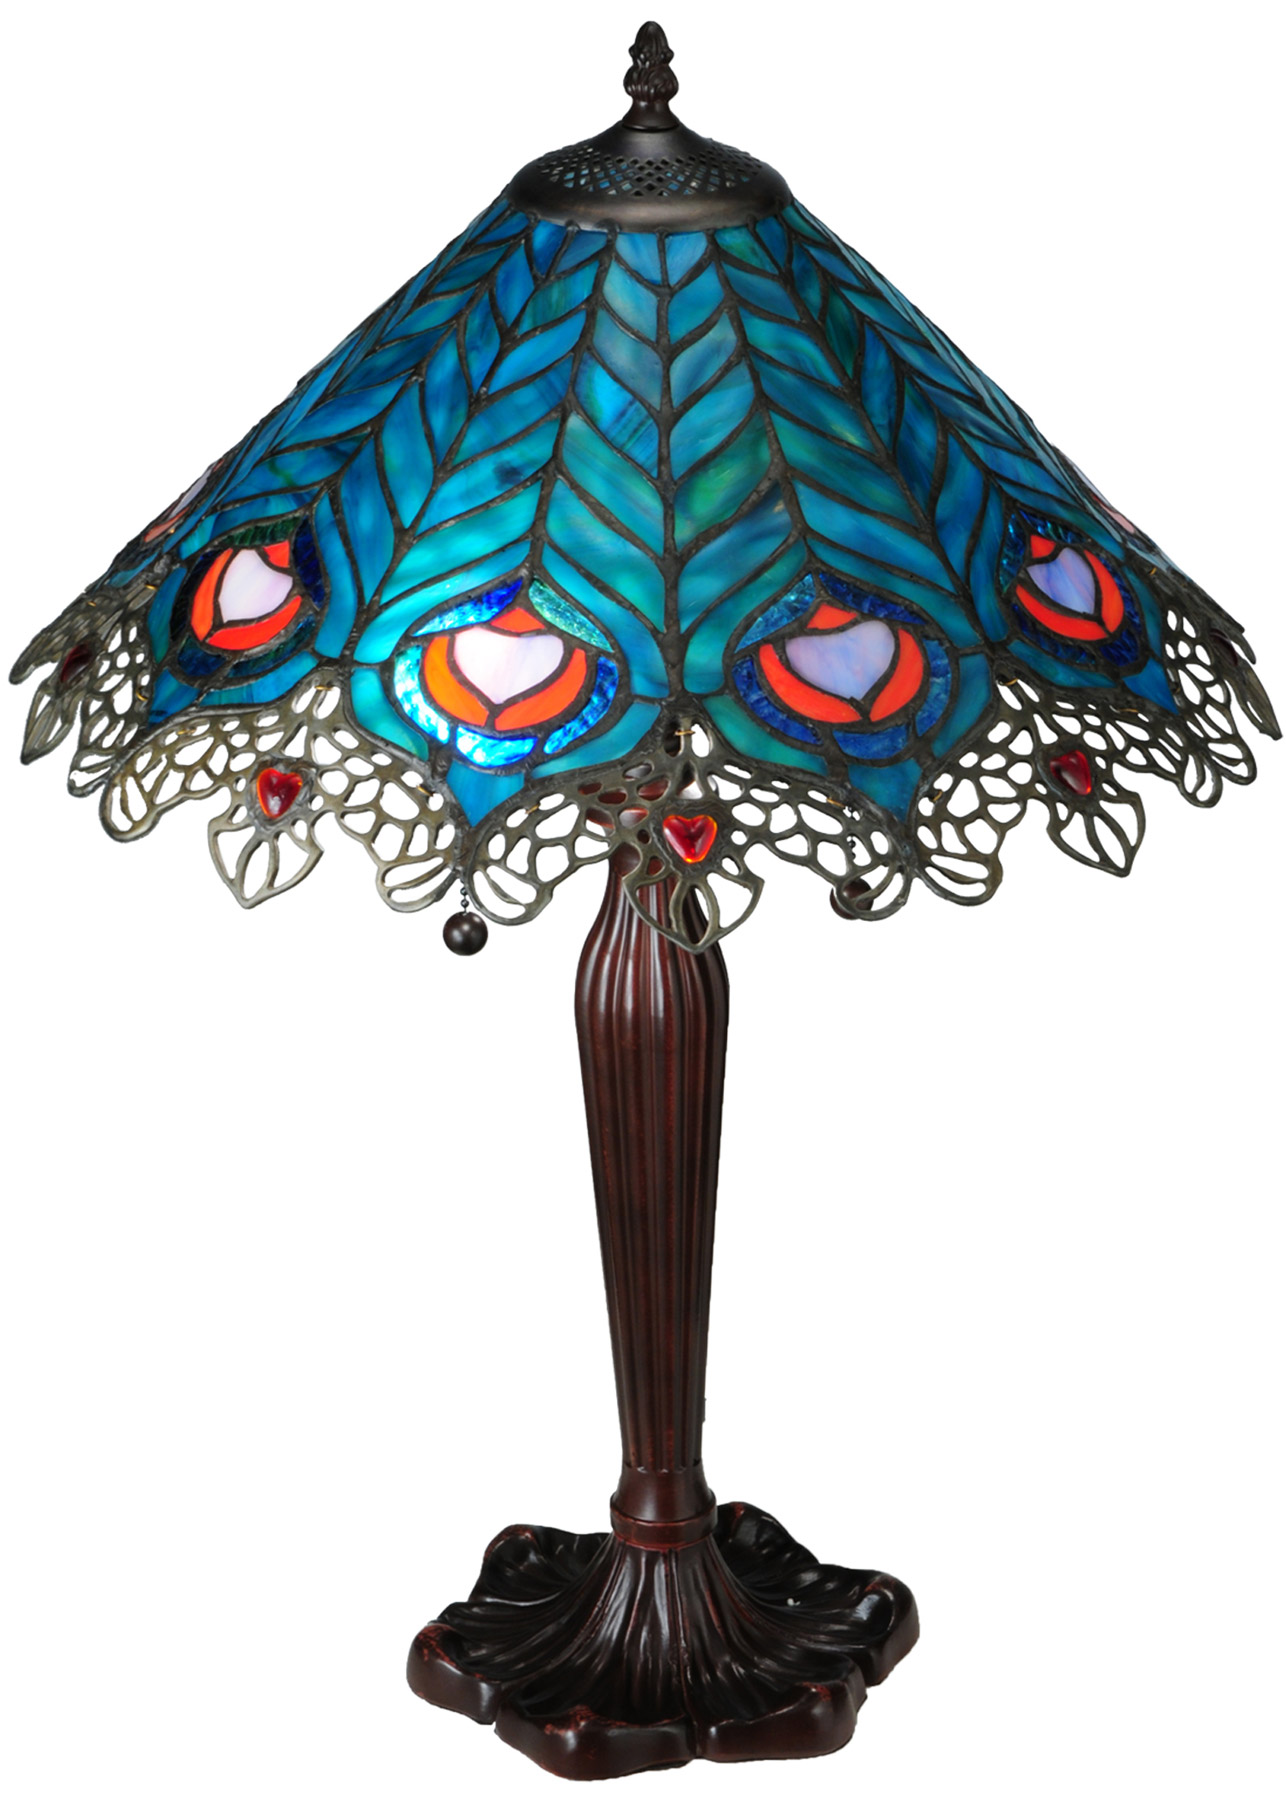 Meyda 138775 Peacock Feather Lace Table Lamp